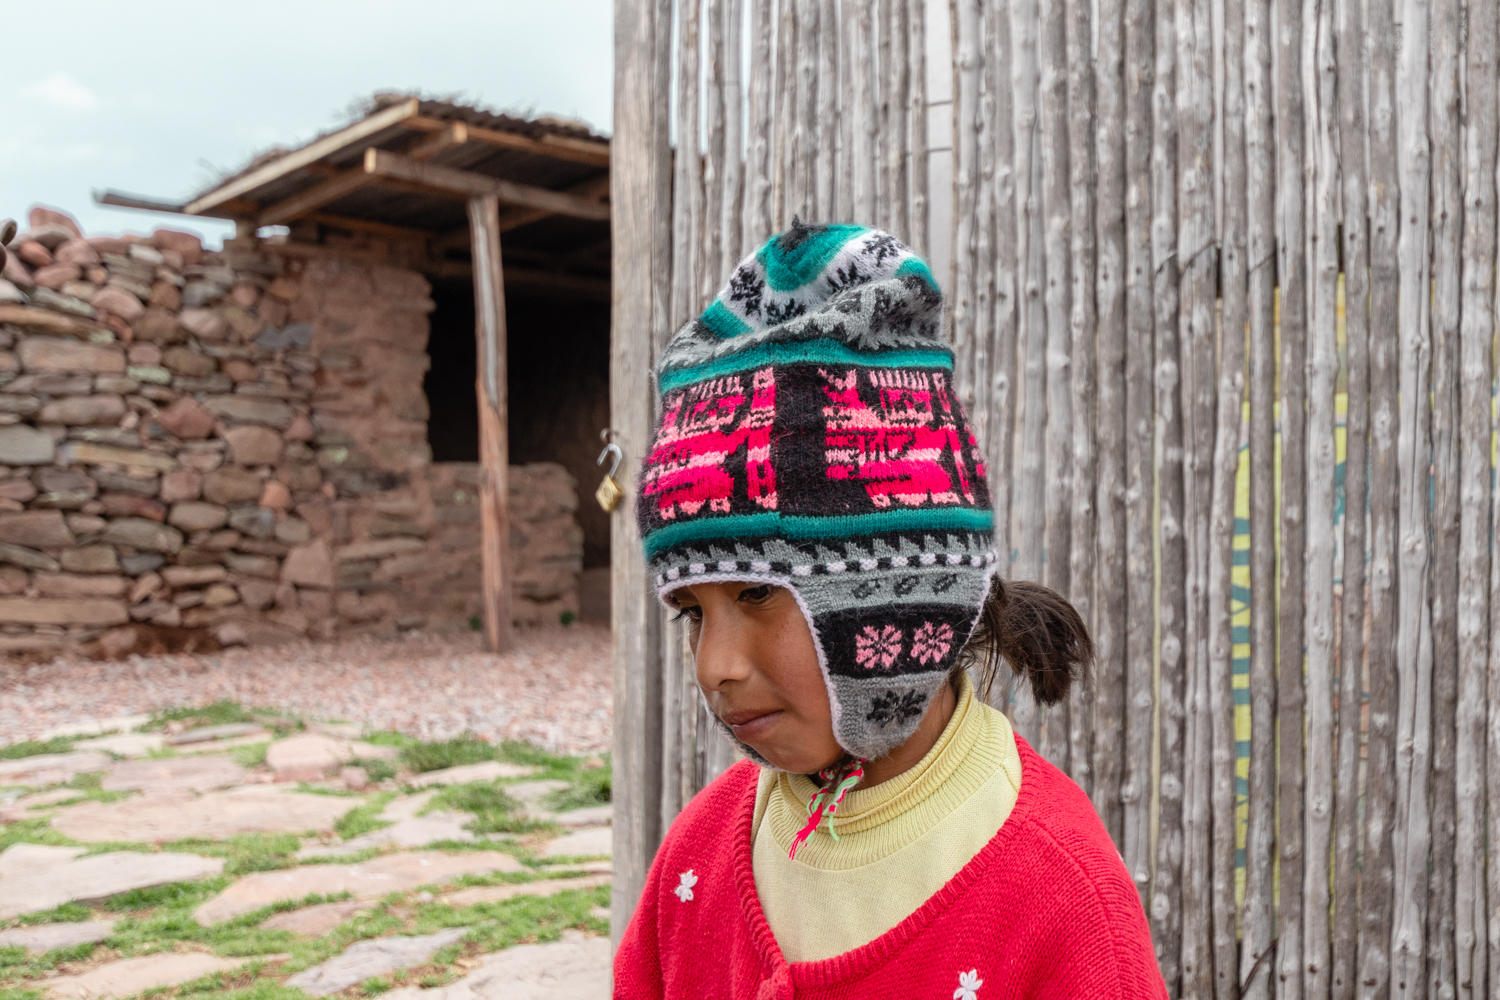 Younger children help sustaining the family, selling handicrafts to tourists around the ruins.